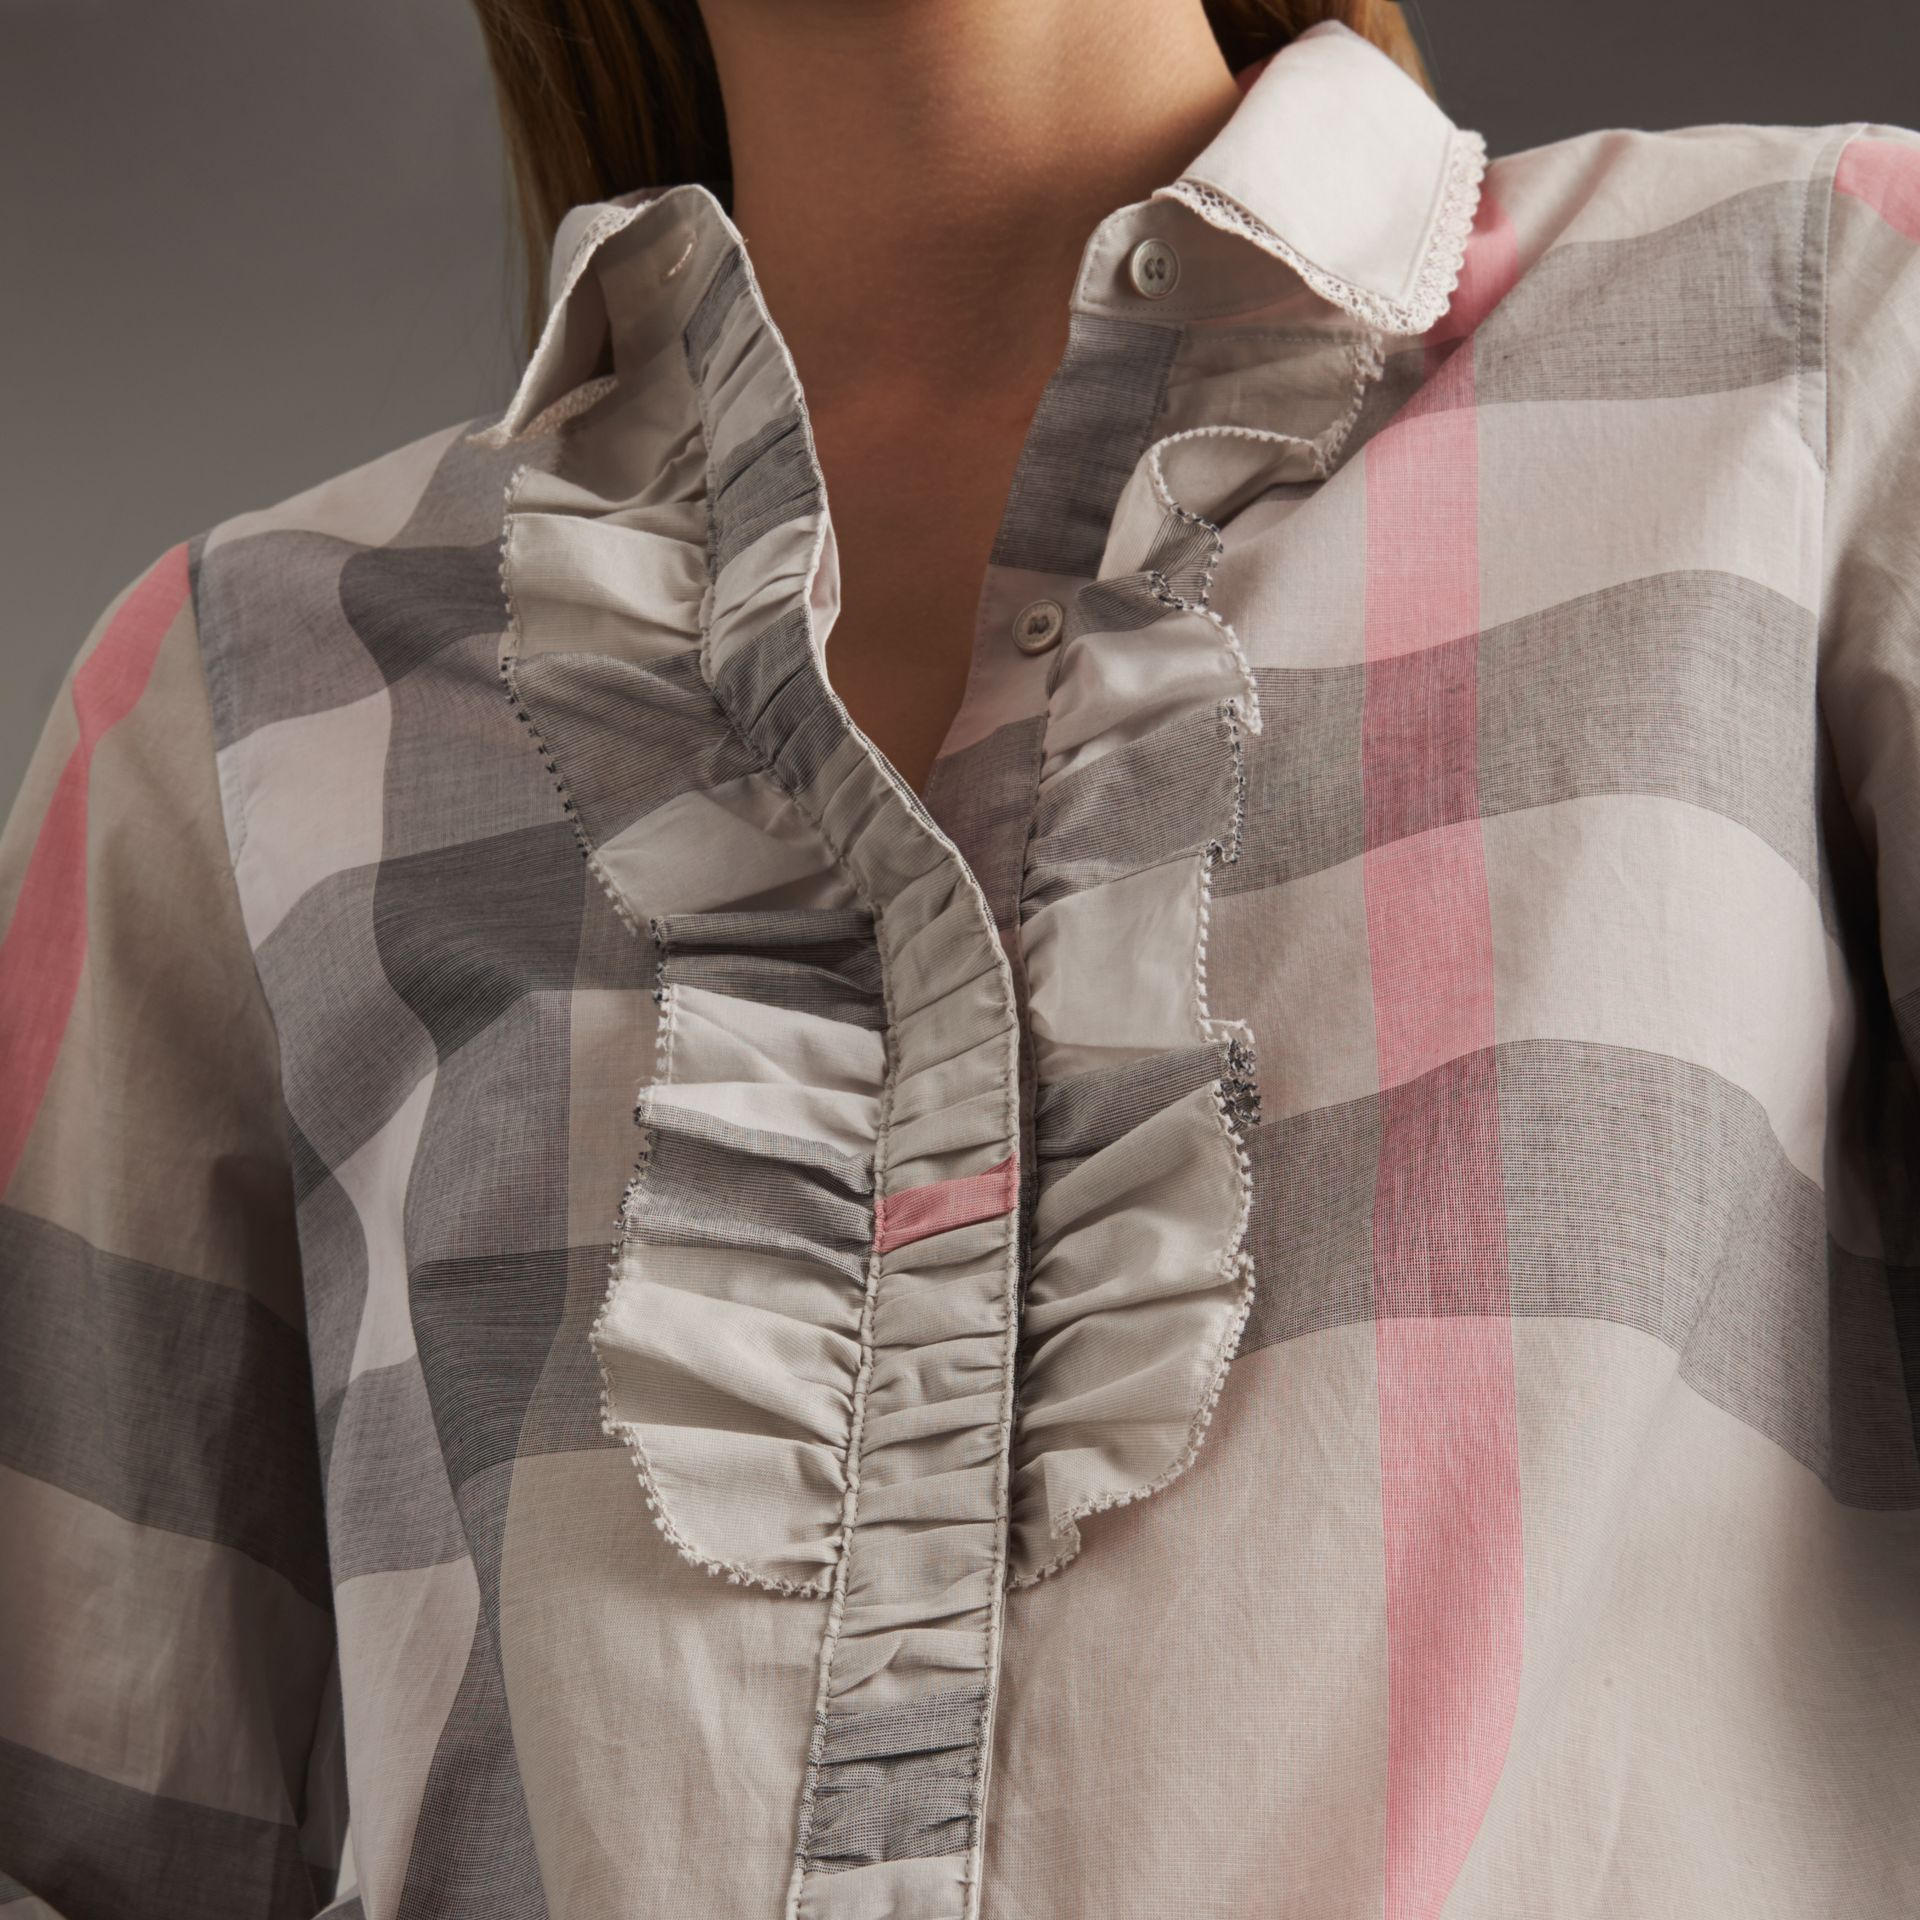 Ruffle Detail and Lace Trim Check Cotton Shirt in Pale Taupe - Women | Burberry - gallery image 5